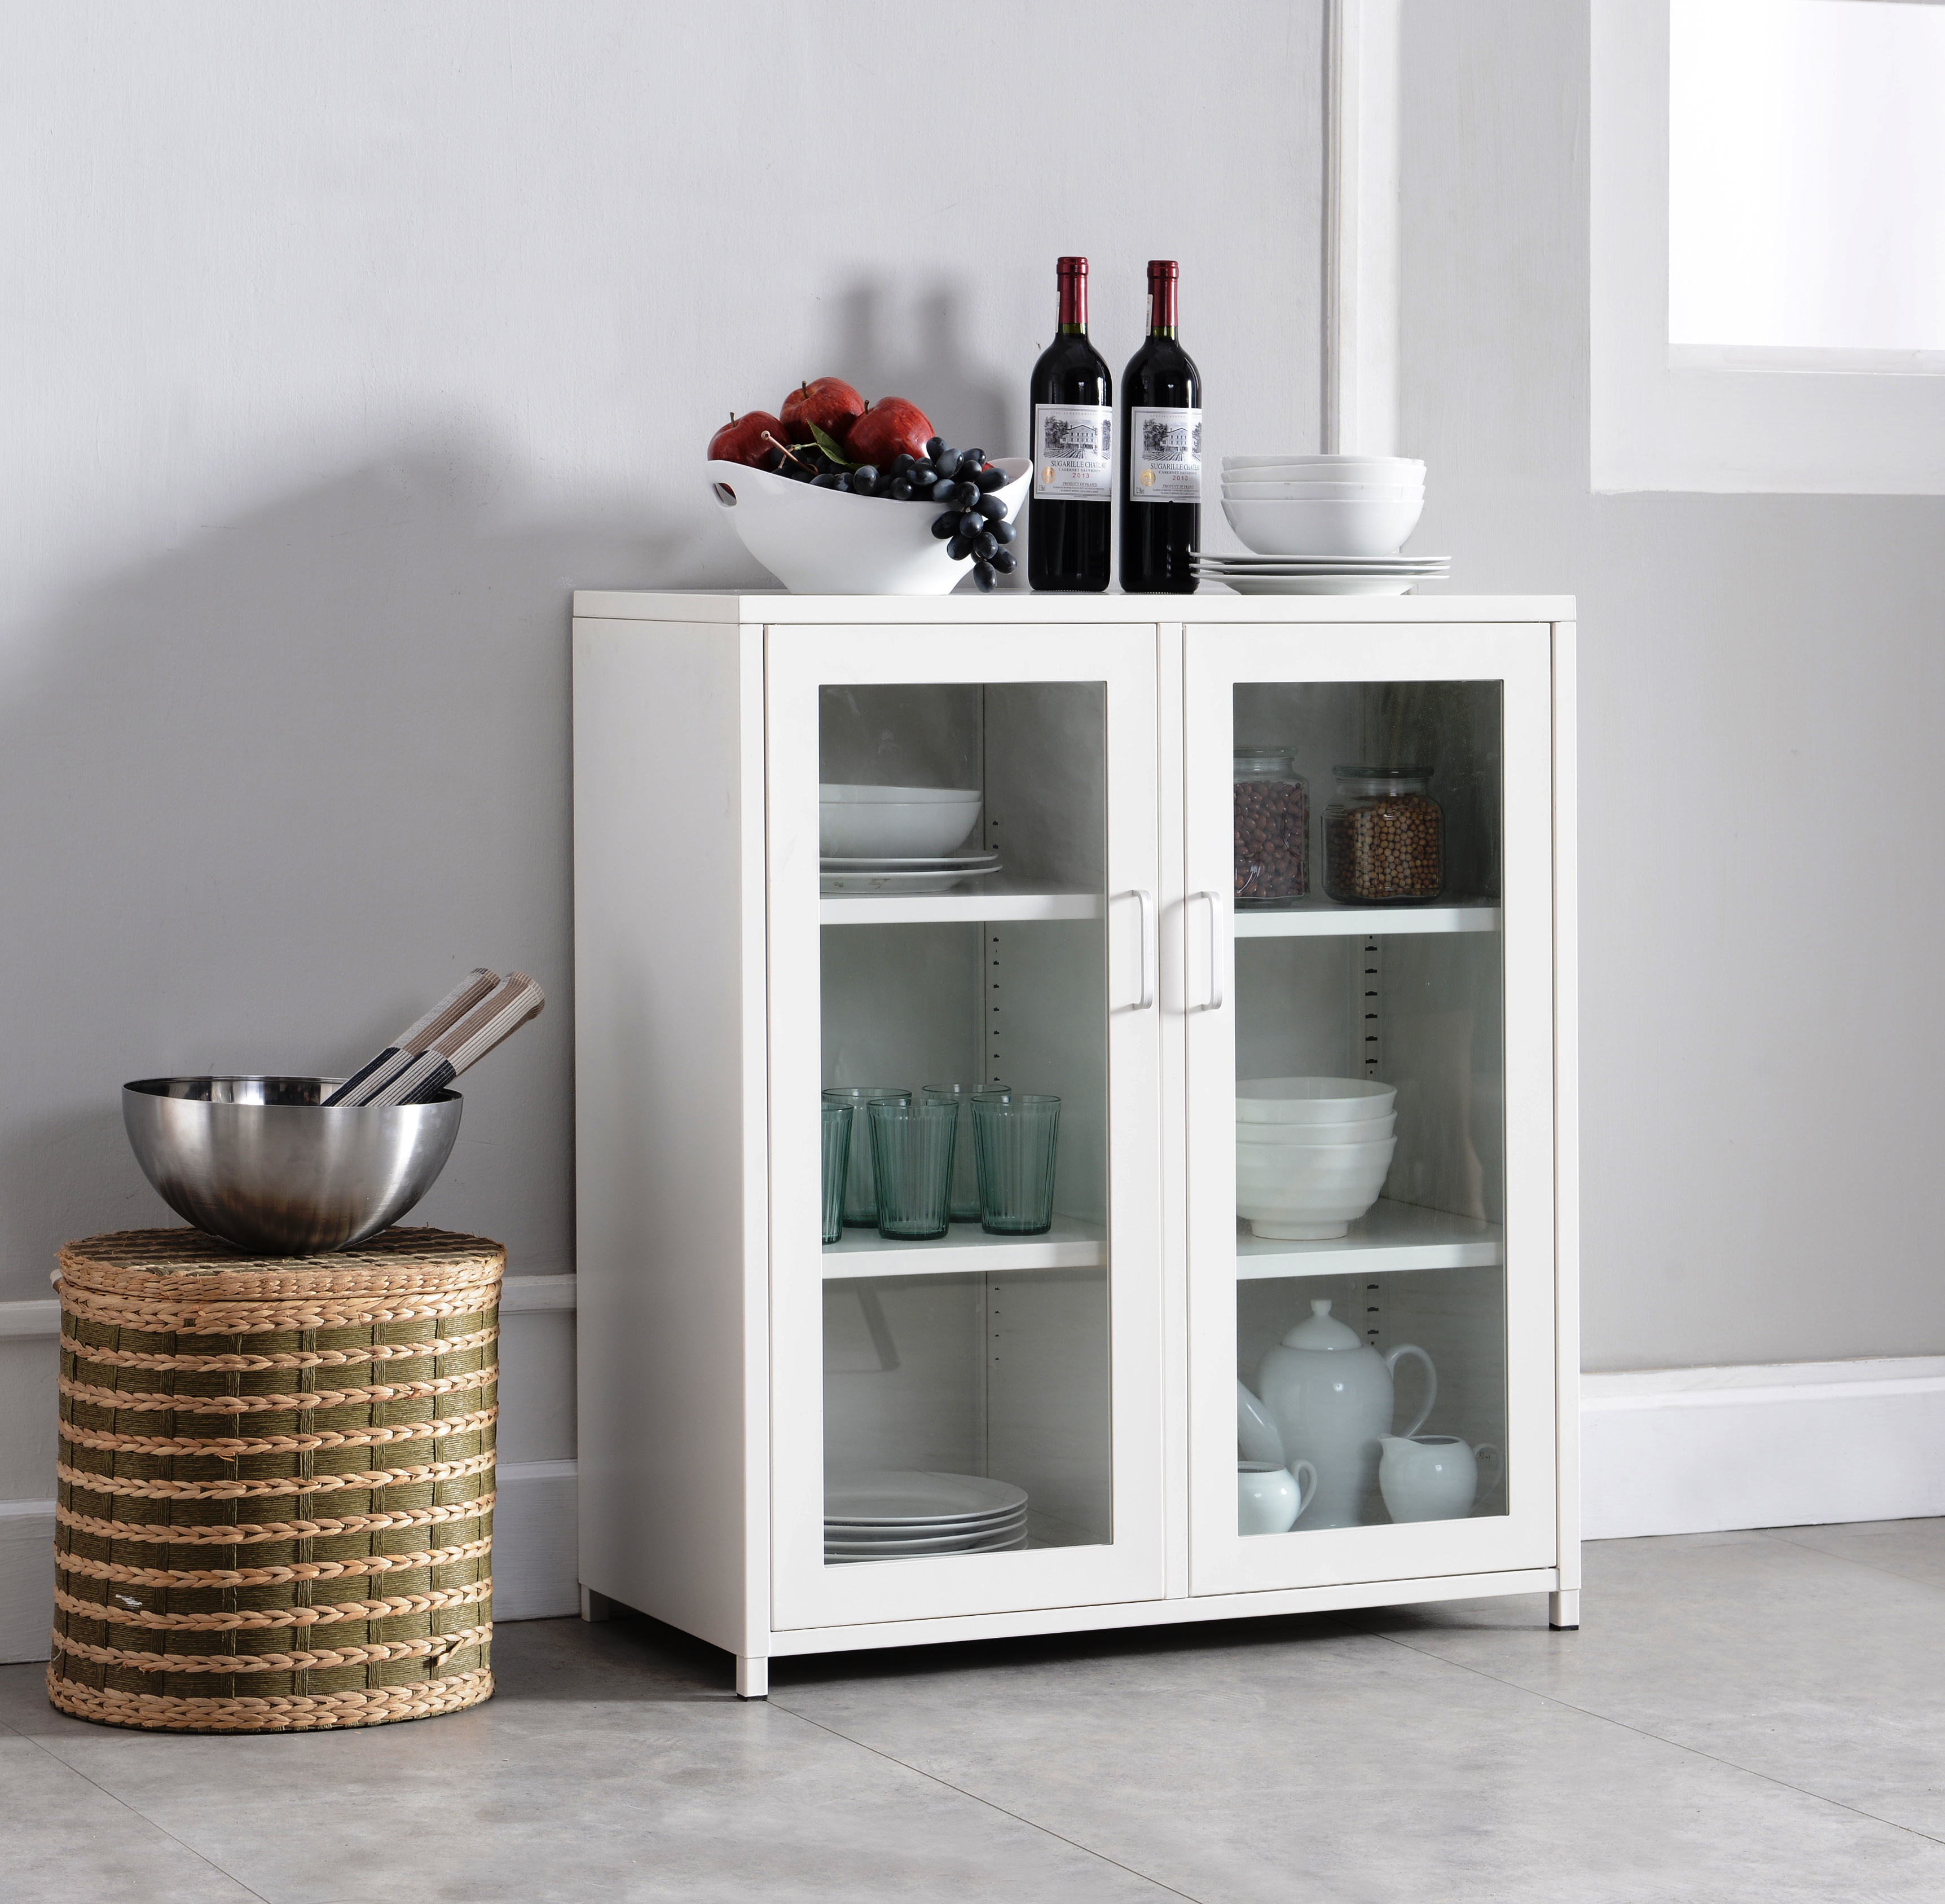 Markle White Iron Transitional Kitchen Storage Accent Cabinet Buffet With 2 Glass Doors & Shelves For Buffets With Bottle And Glass Storage (View 7 of 20)